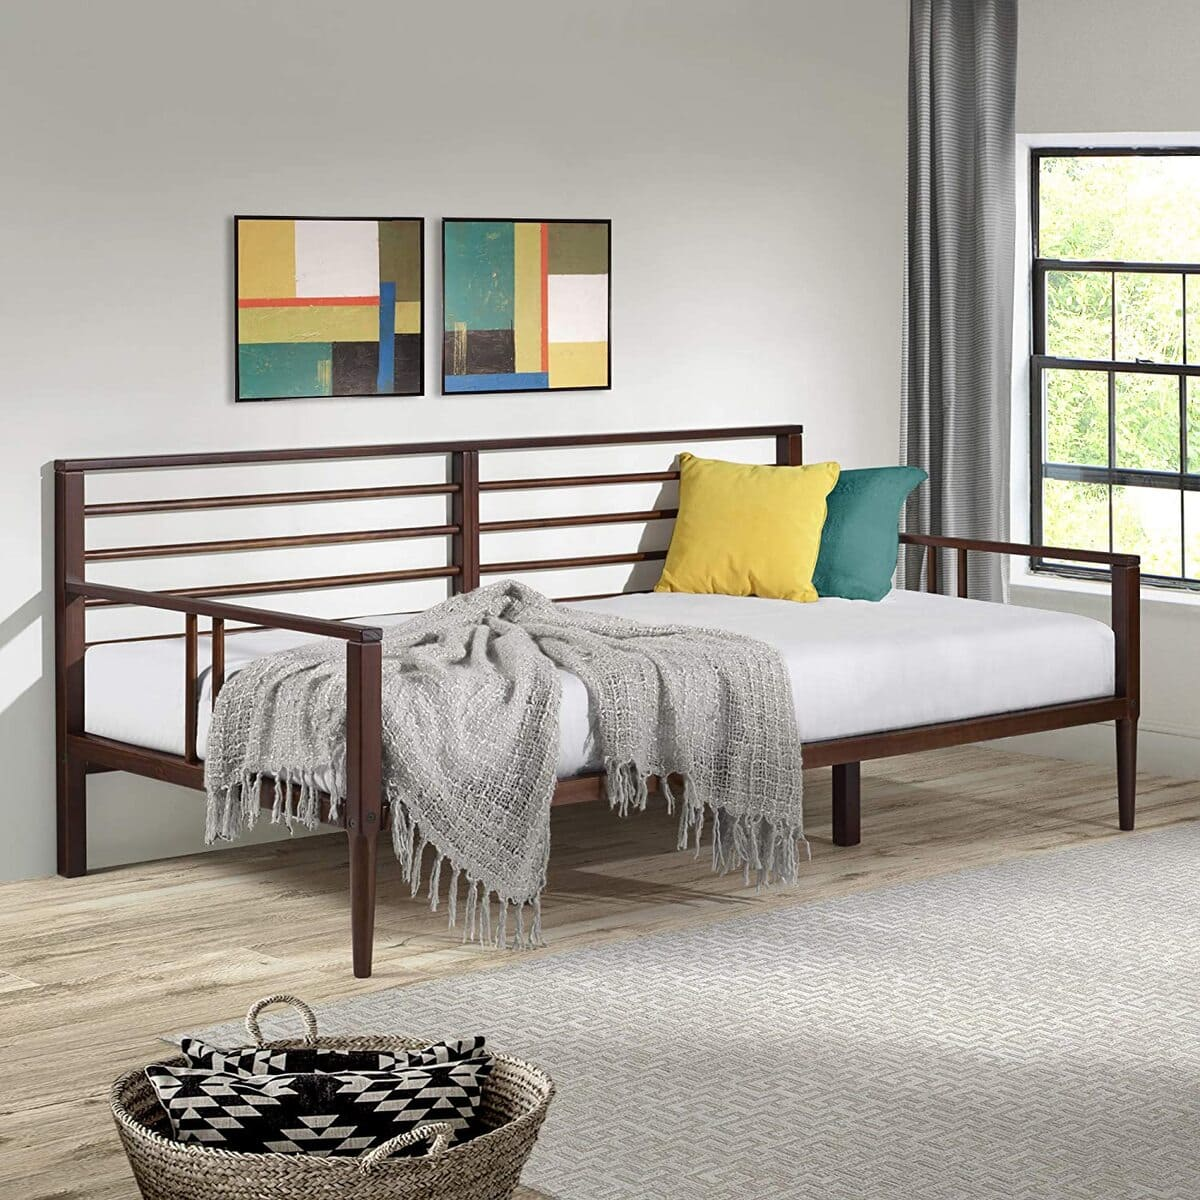 daybed 7 - 20 delightful daybeds that easily convert into comfortable beds